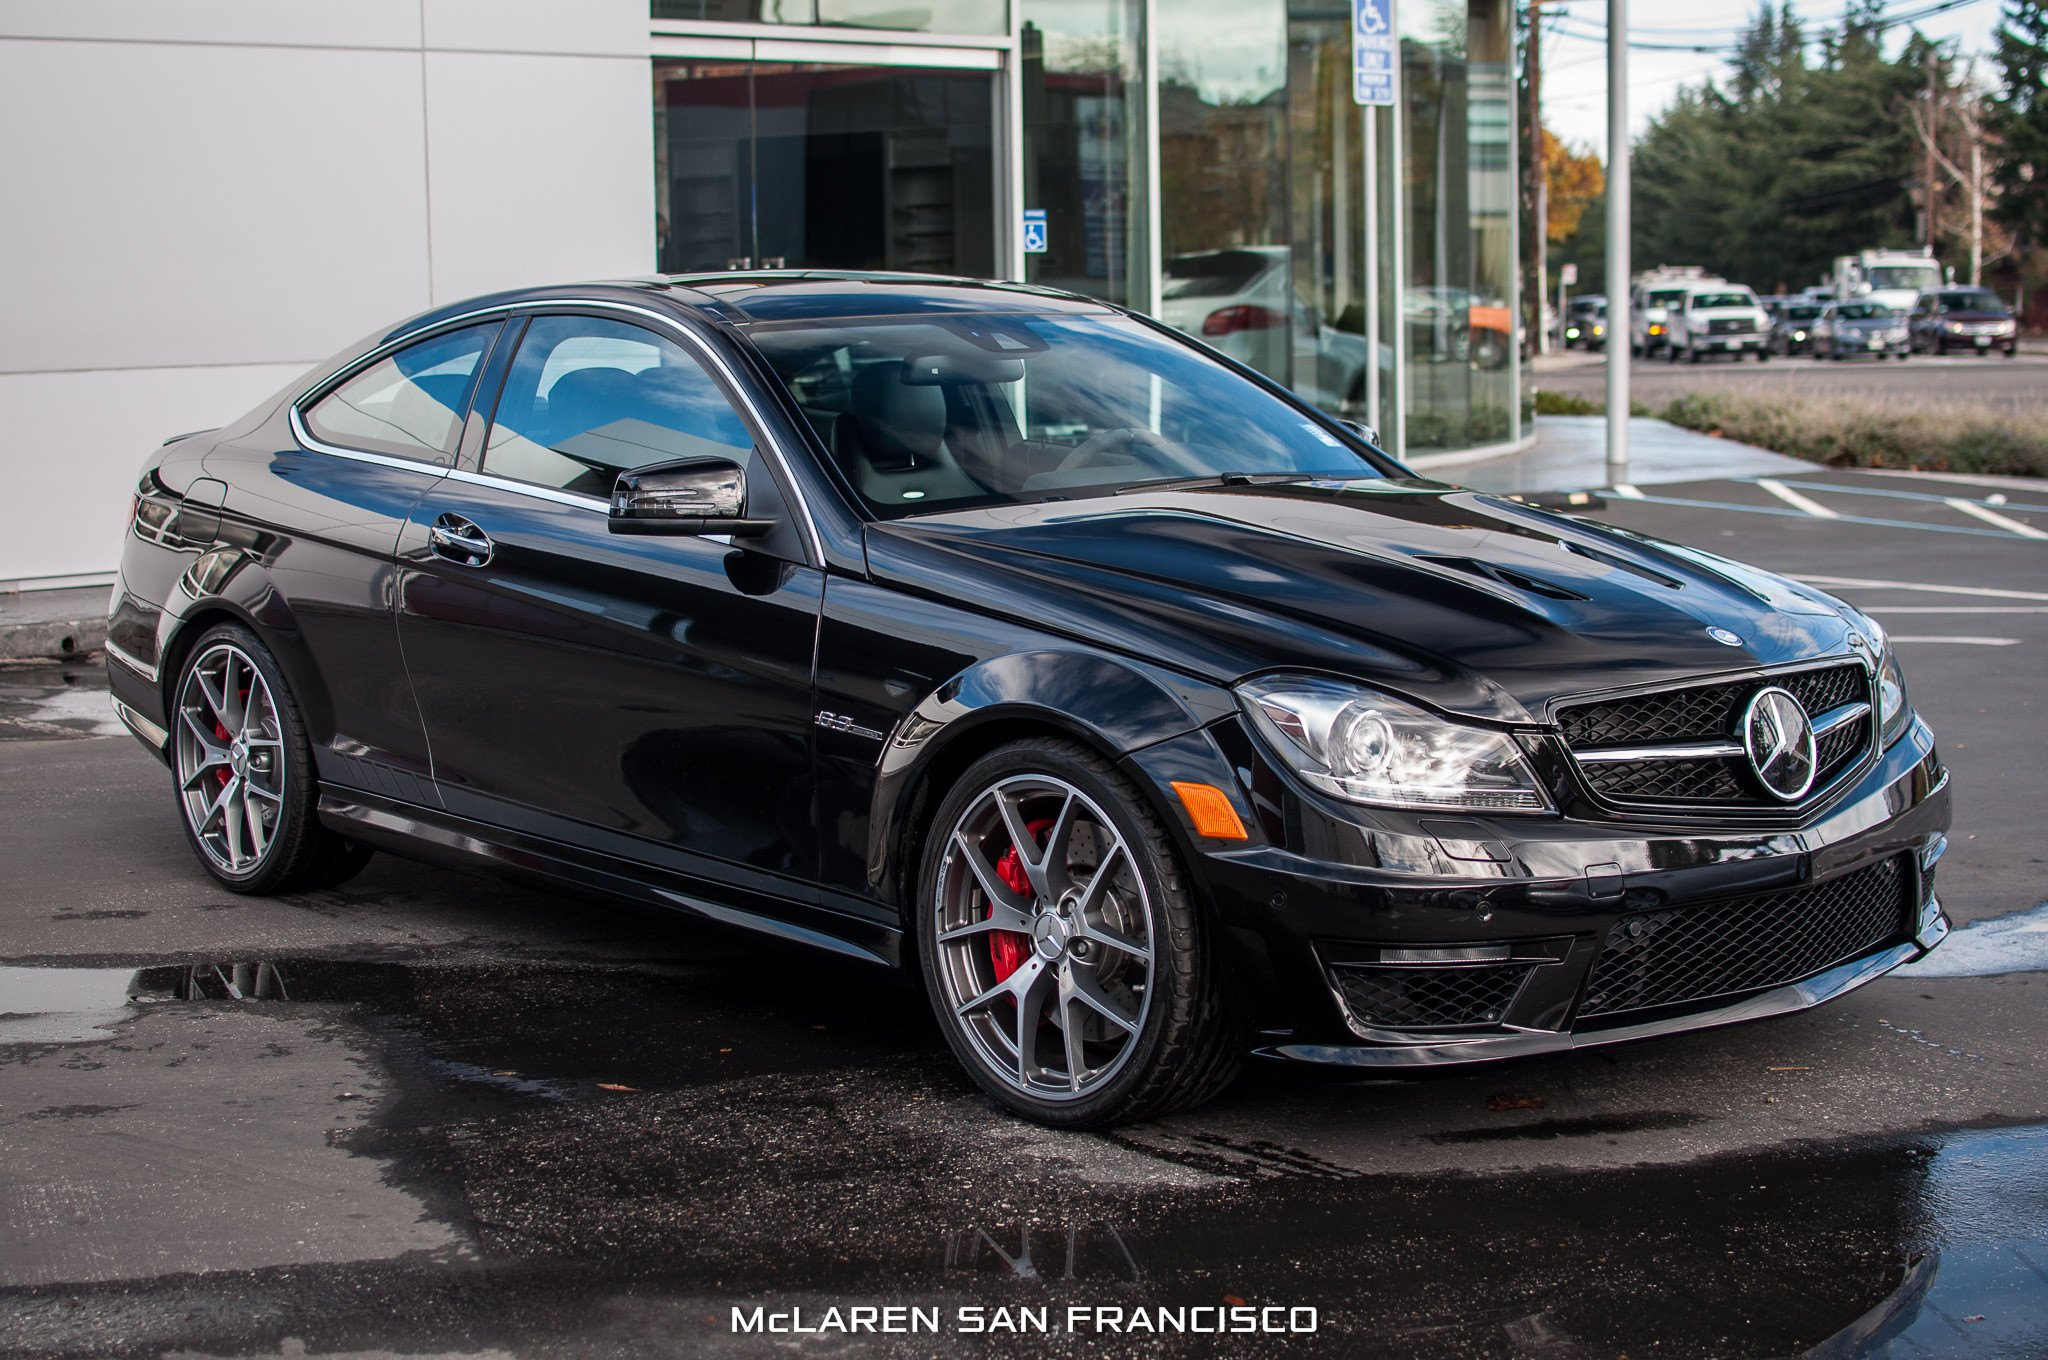 2014 mercedes benz c63 amg edition 507 cars coupe black for Mercedes benz c63 amg edition 507